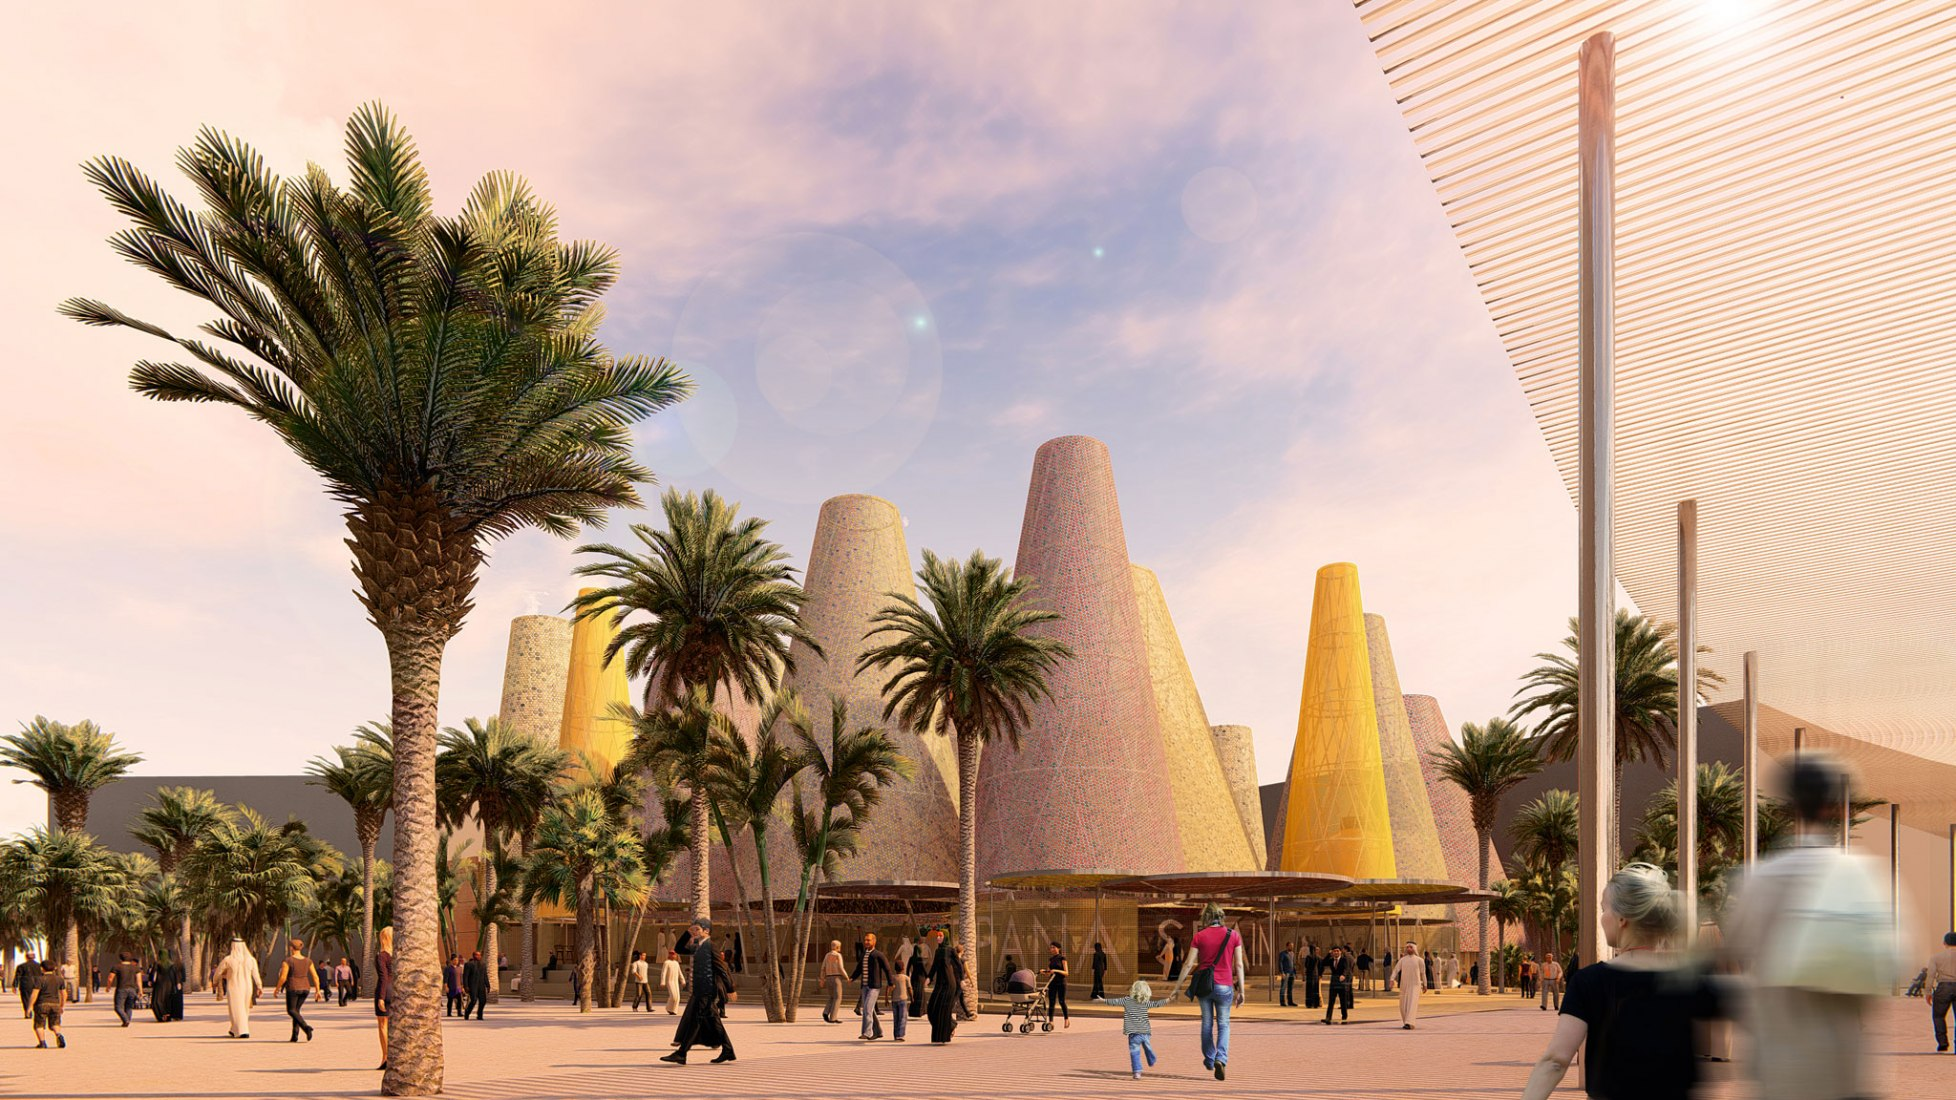 The Amann-Cánovas-Maruri study (Temperaturas Extremas Arquitectos, S.L.P.), winner of the competition called to choose the architecture project of the Spanish Pavilion at the Expo Dubai 2020. Courtesy of Temperaturas Extremas arquitectos, S.L.P.